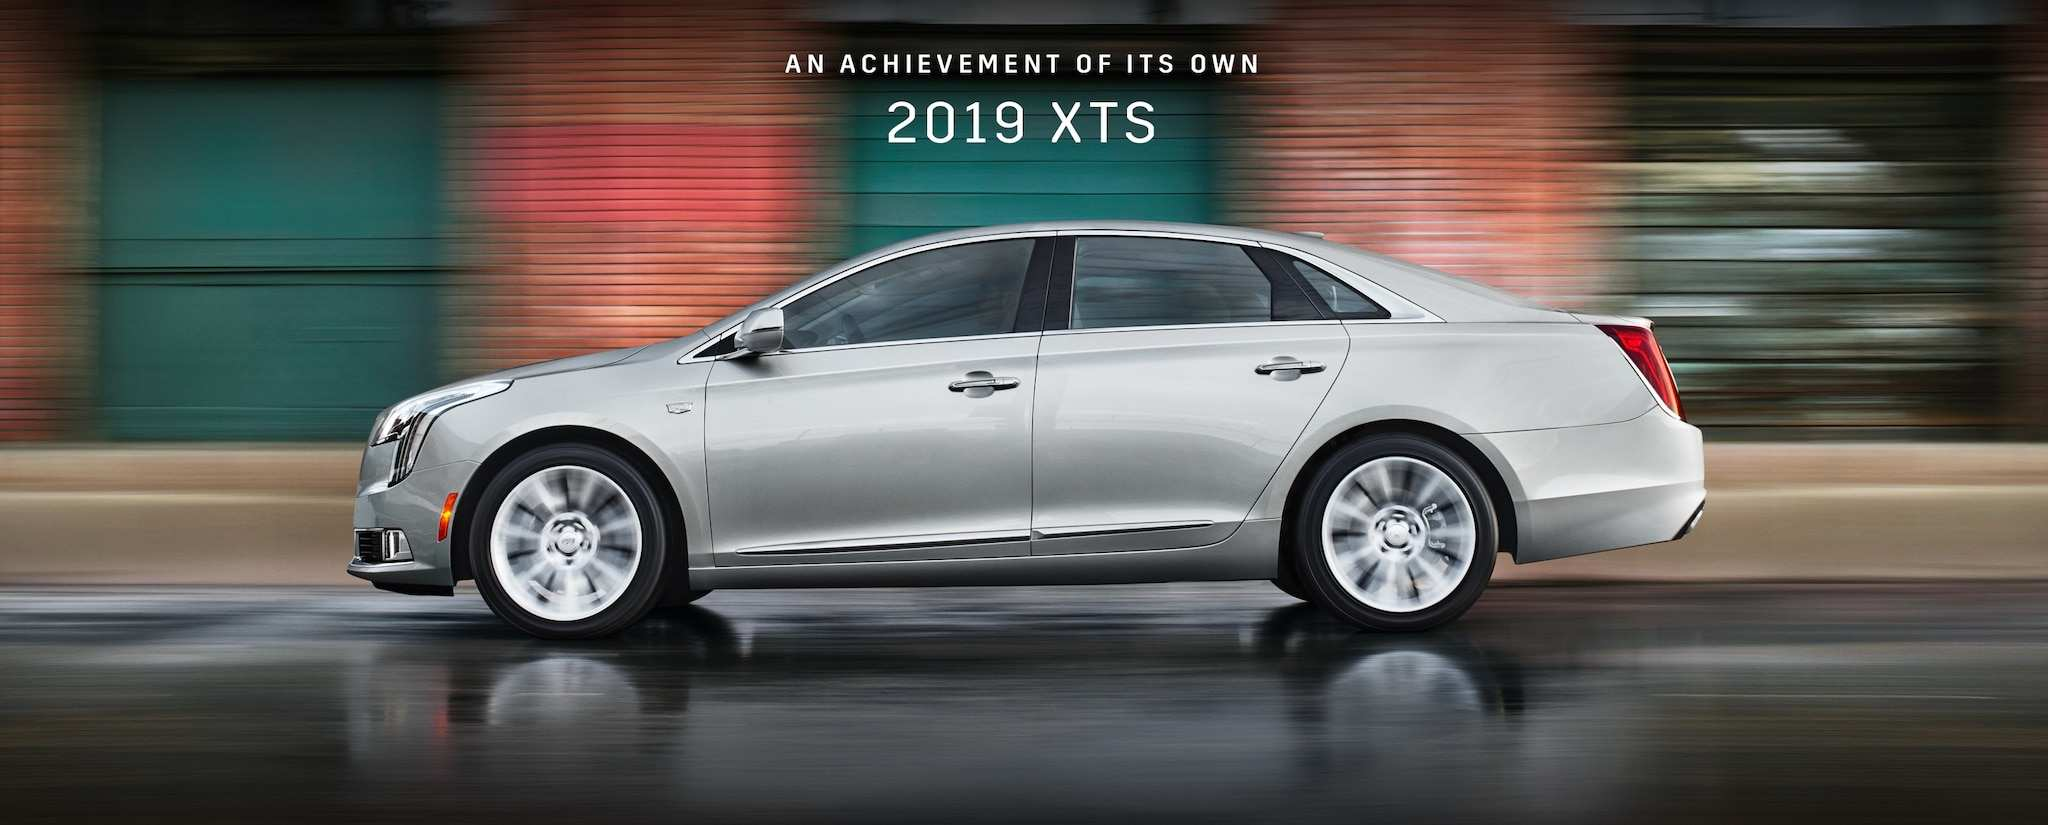 55 Great 2019 Candillac Xts History for 2019 Candillac Xts